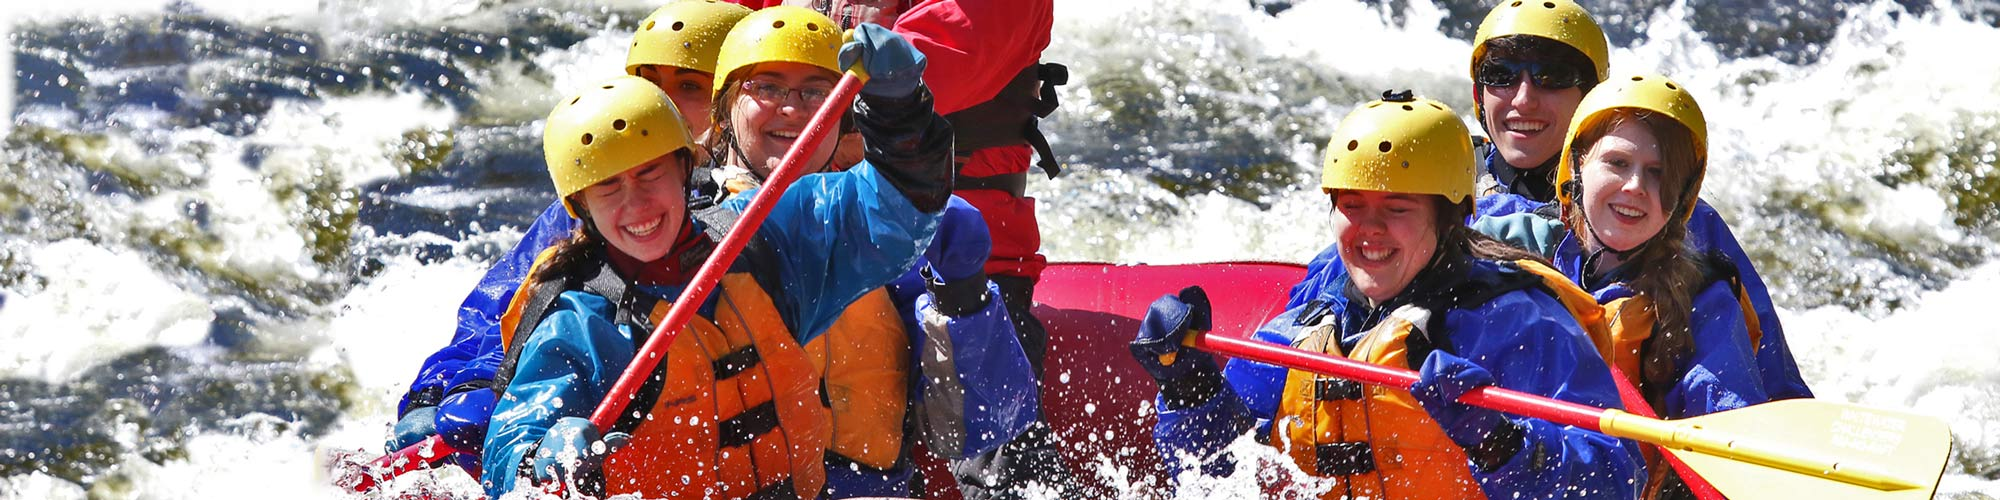 Outdoor Pursuits Whitewater Rafting